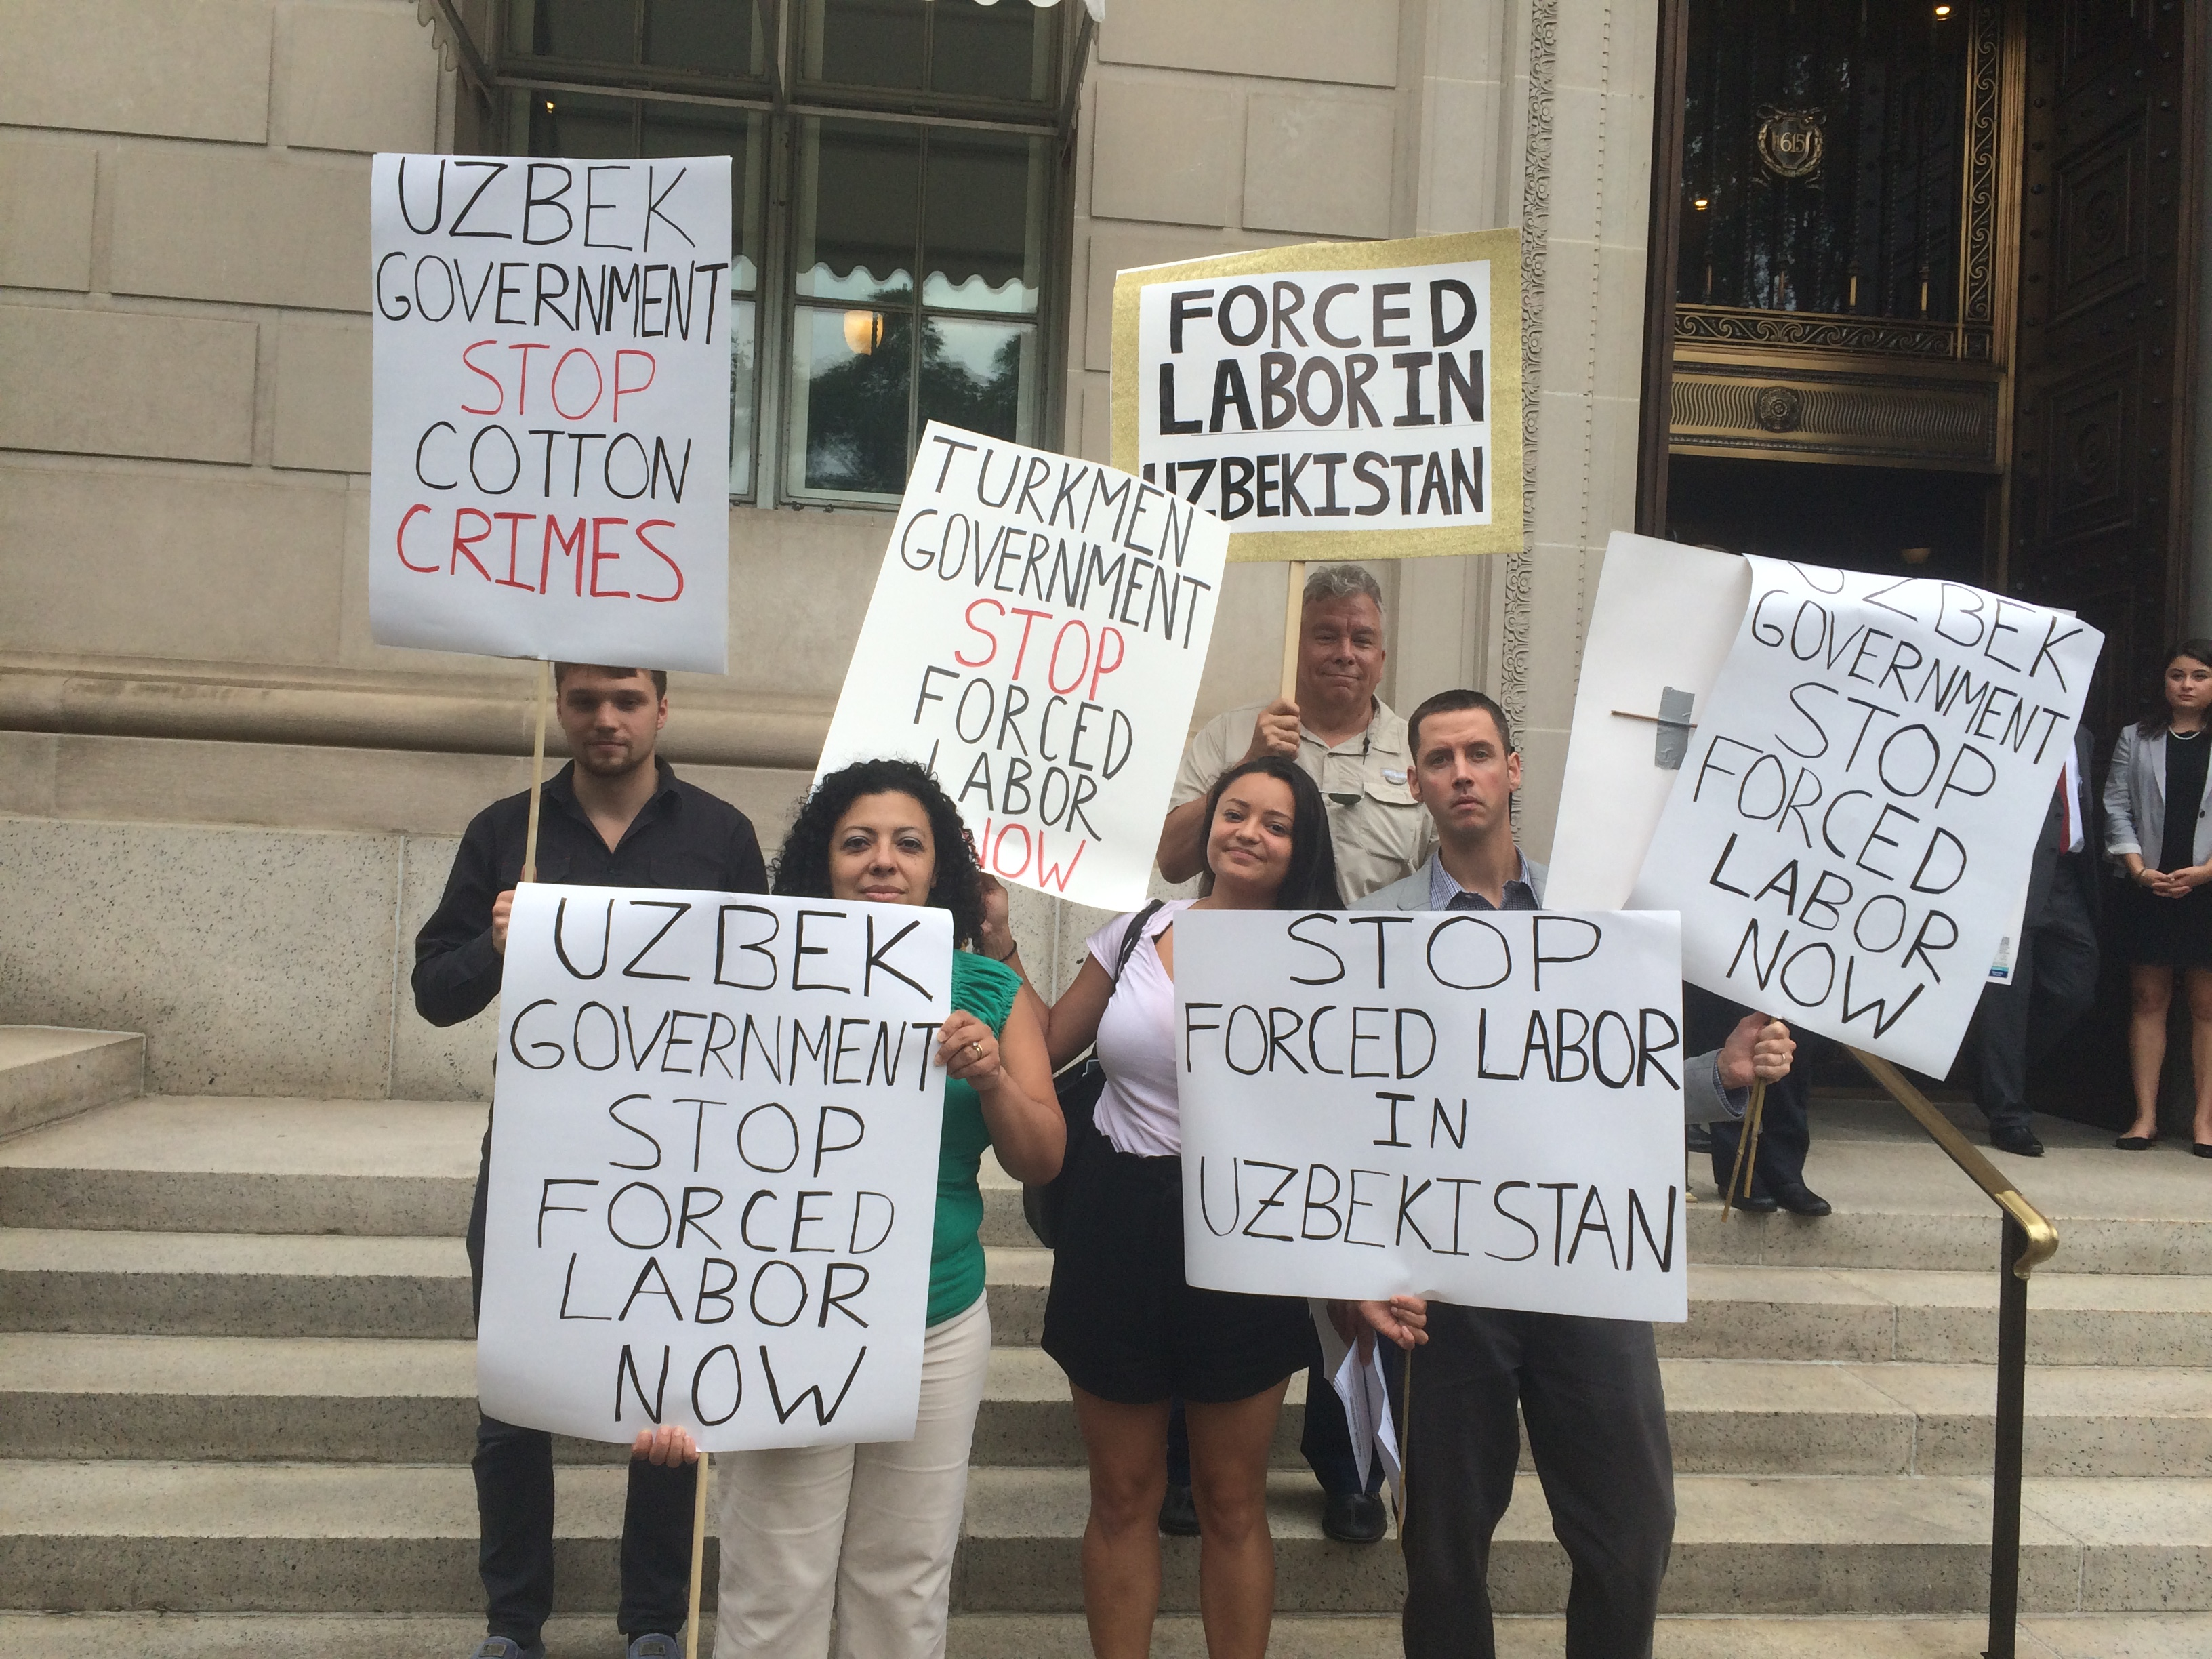 Protest Campaign at the U.S. Chamber of Commerce